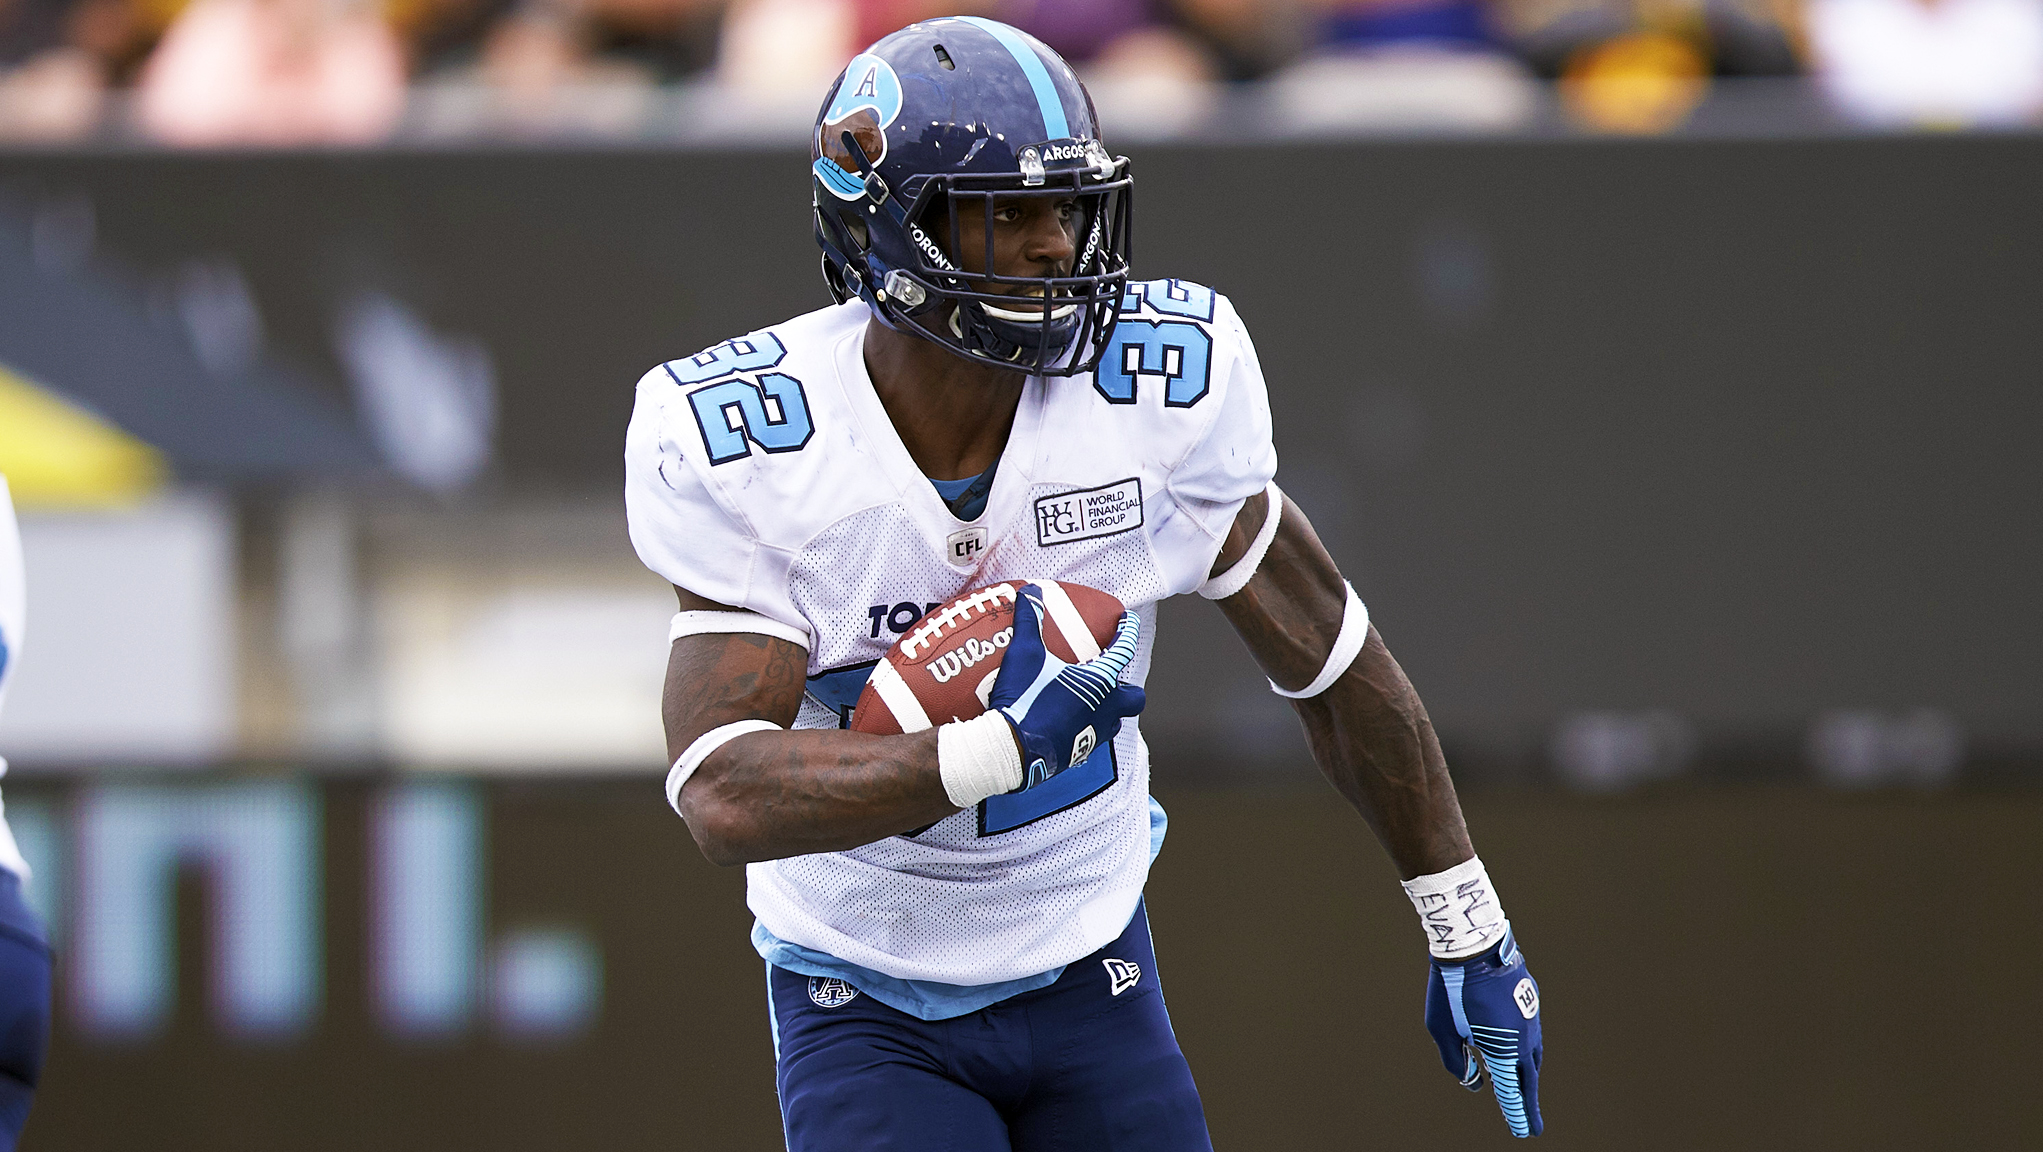 Wilder: 'Every guy in our locker room believes we have a shot' - CFL.ca